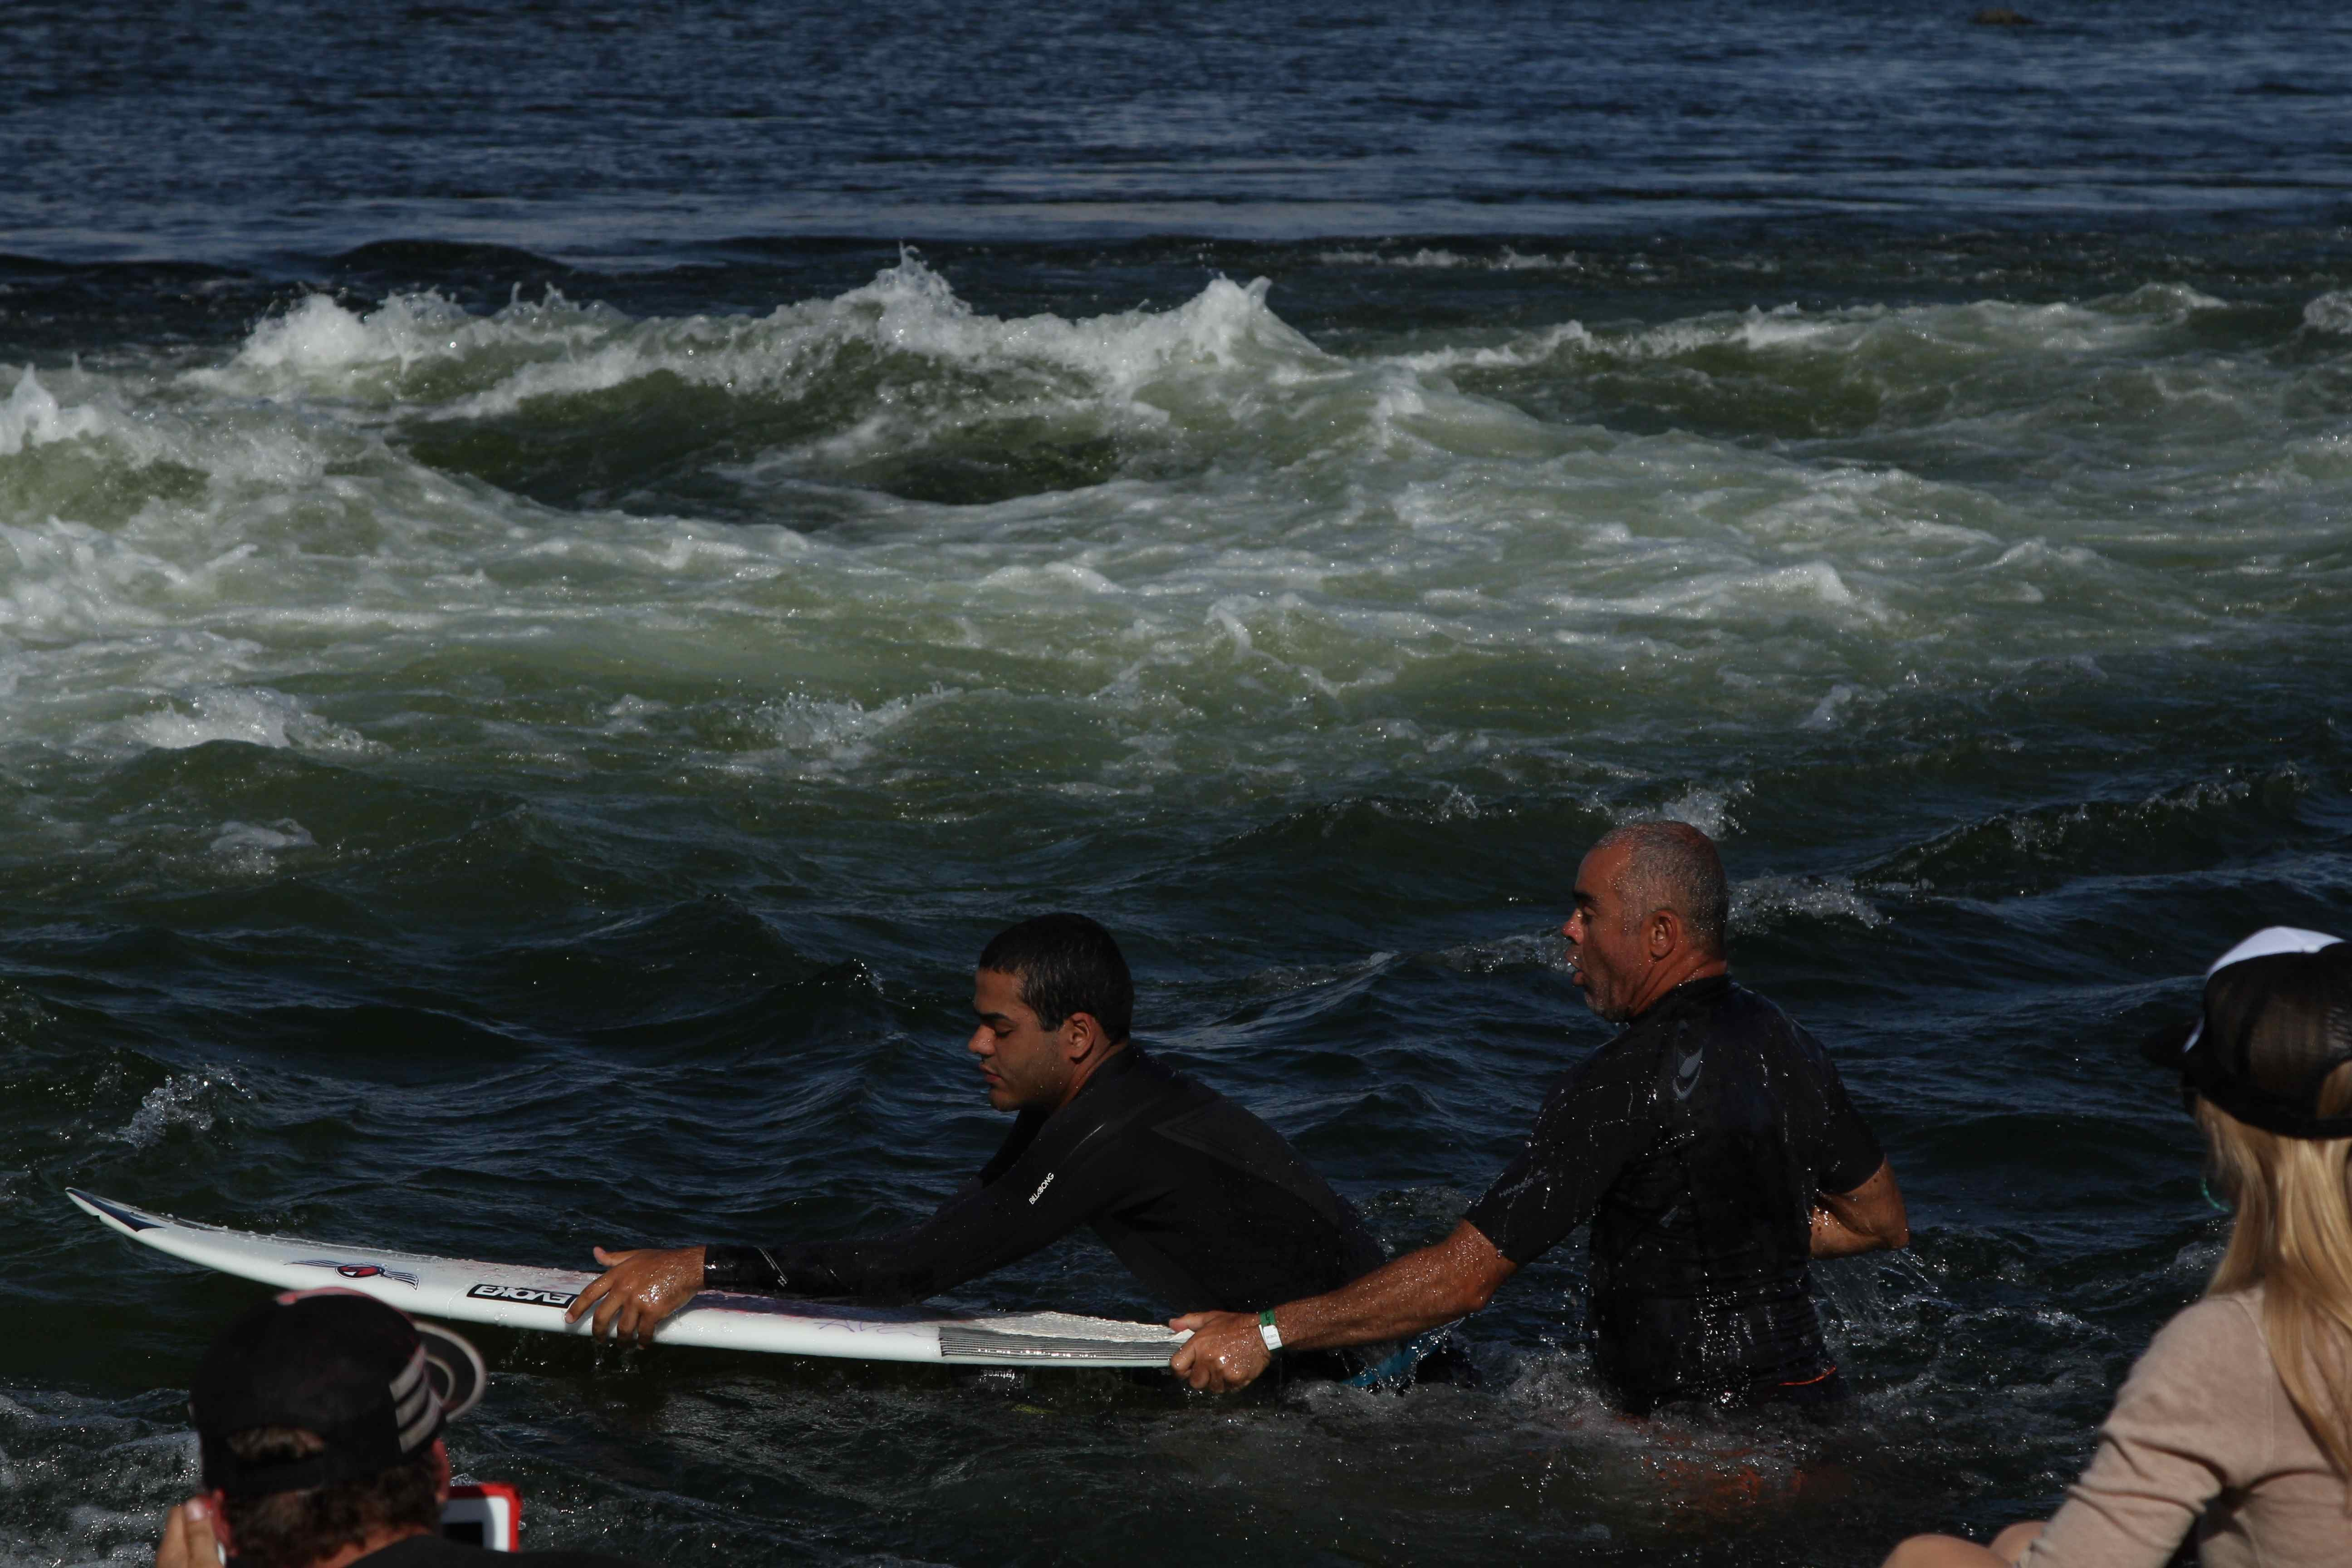 Derek prepares to surf with the help of his dad as KWP founder Kristina Pickard watches on